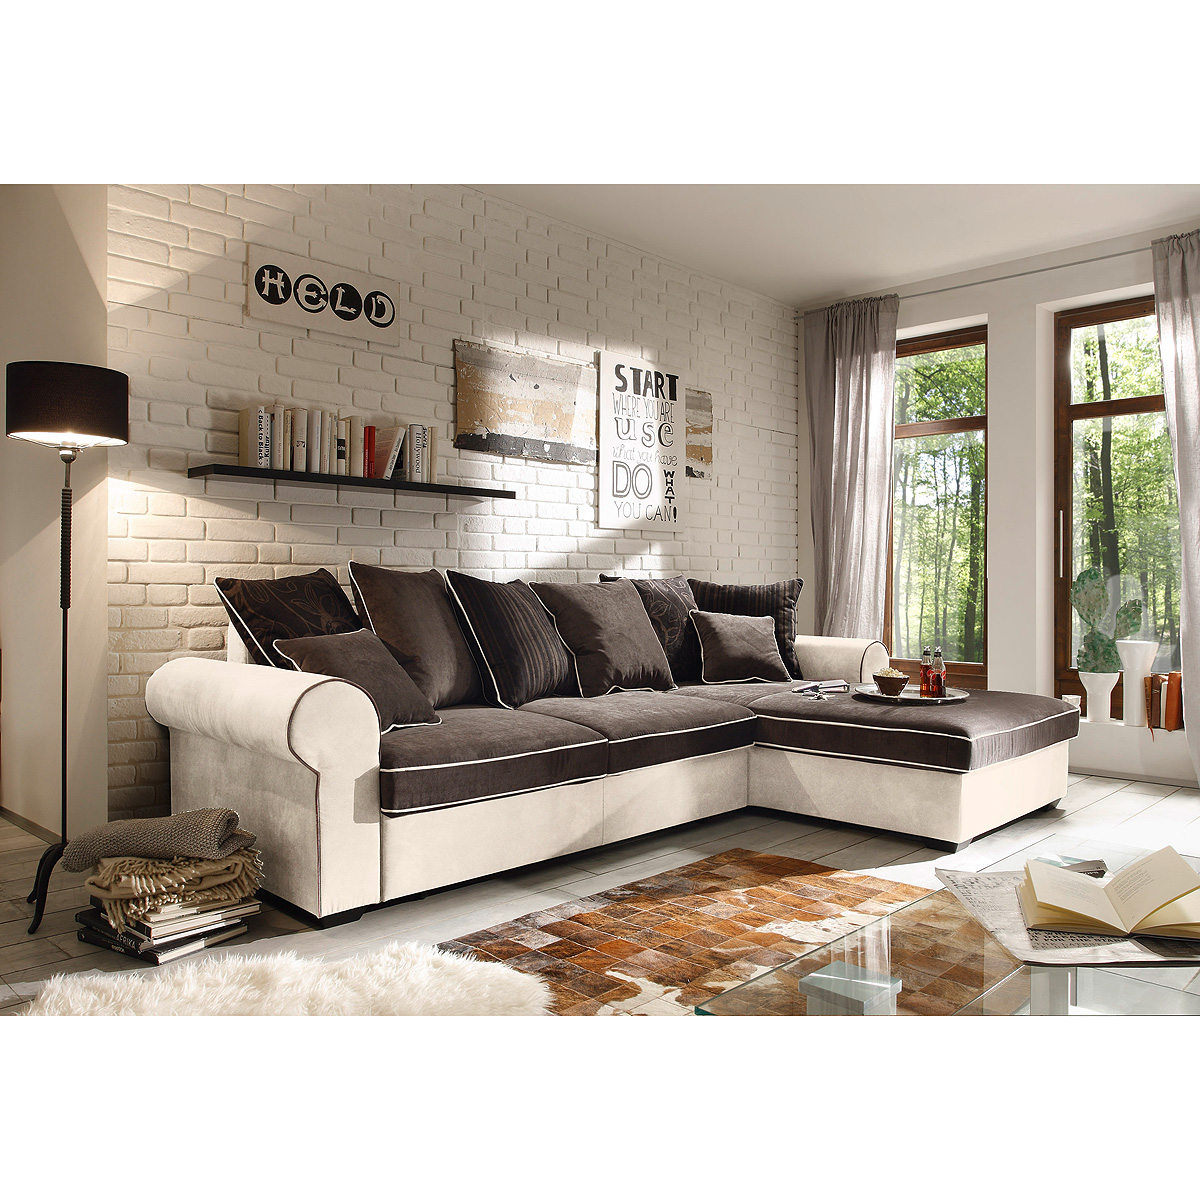 ecksofa canyon wohnlandschaft sofa in braun schwarzbraun beige mit funktion ebay. Black Bedroom Furniture Sets. Home Design Ideas